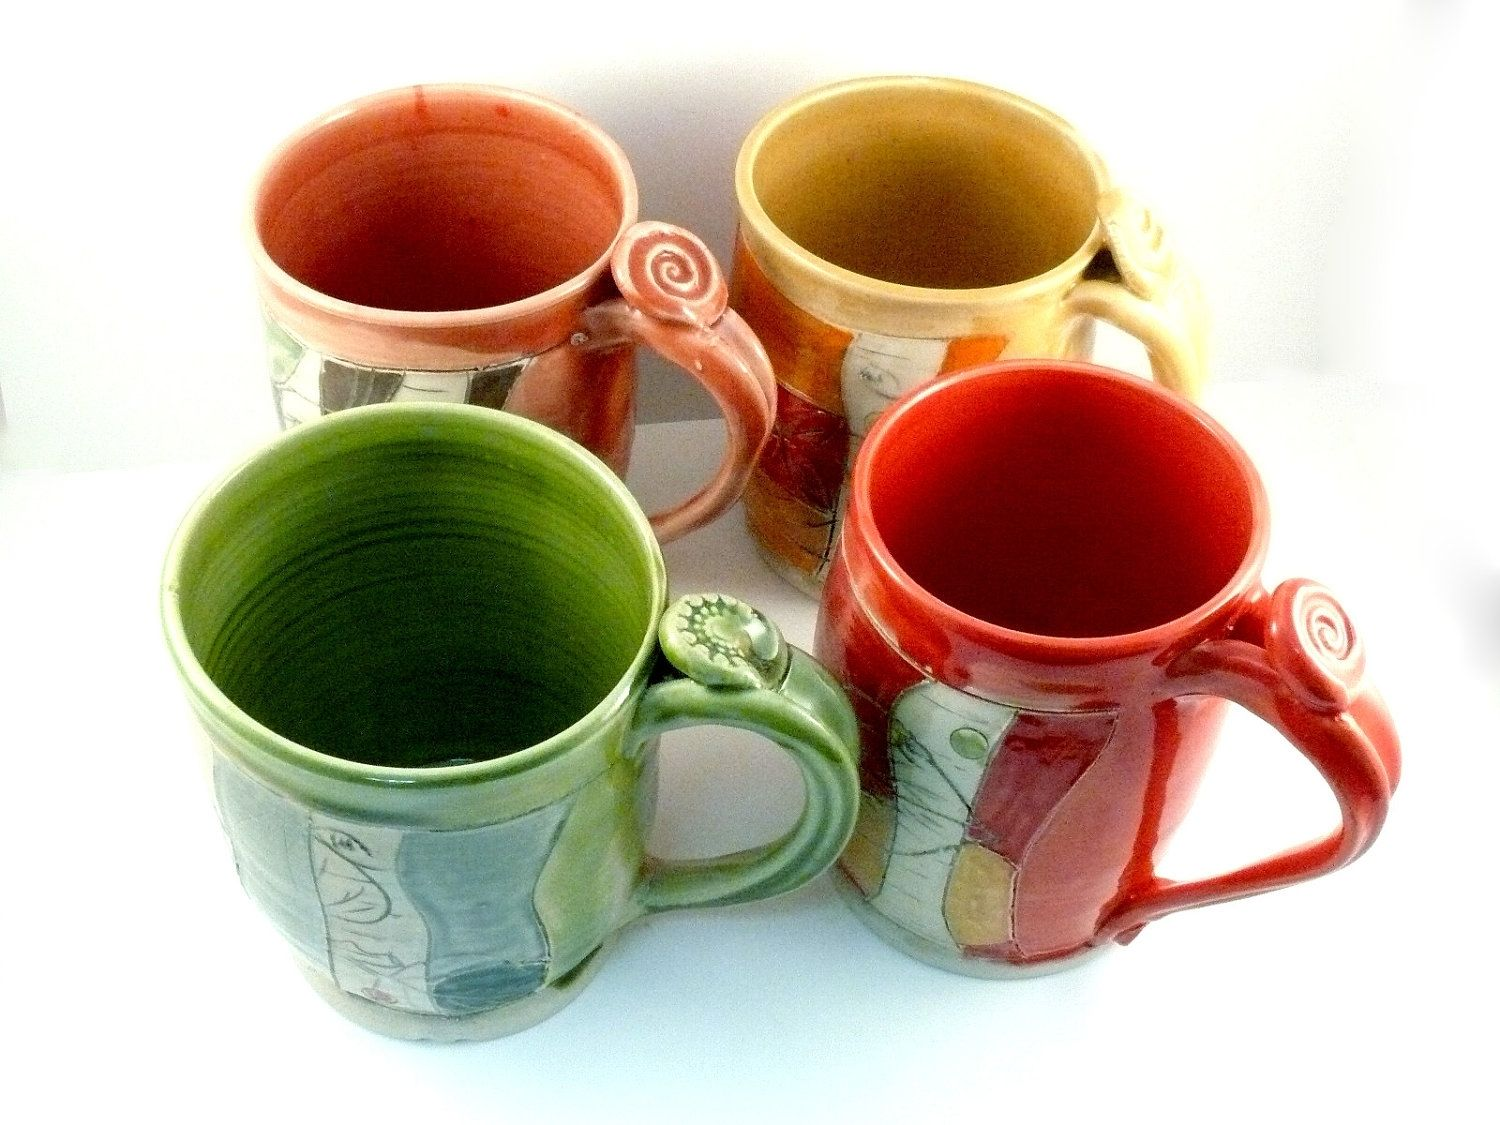 Pool Glazed Ceramic Ounce Coffee Made To Order From Blue Sky Pottery Buy Hand Made Four Coffee Mugs Set Carved Glazed Buy Hand Made Four Coffee Mugs Set Carved furniture Unique Ceramic Mugs